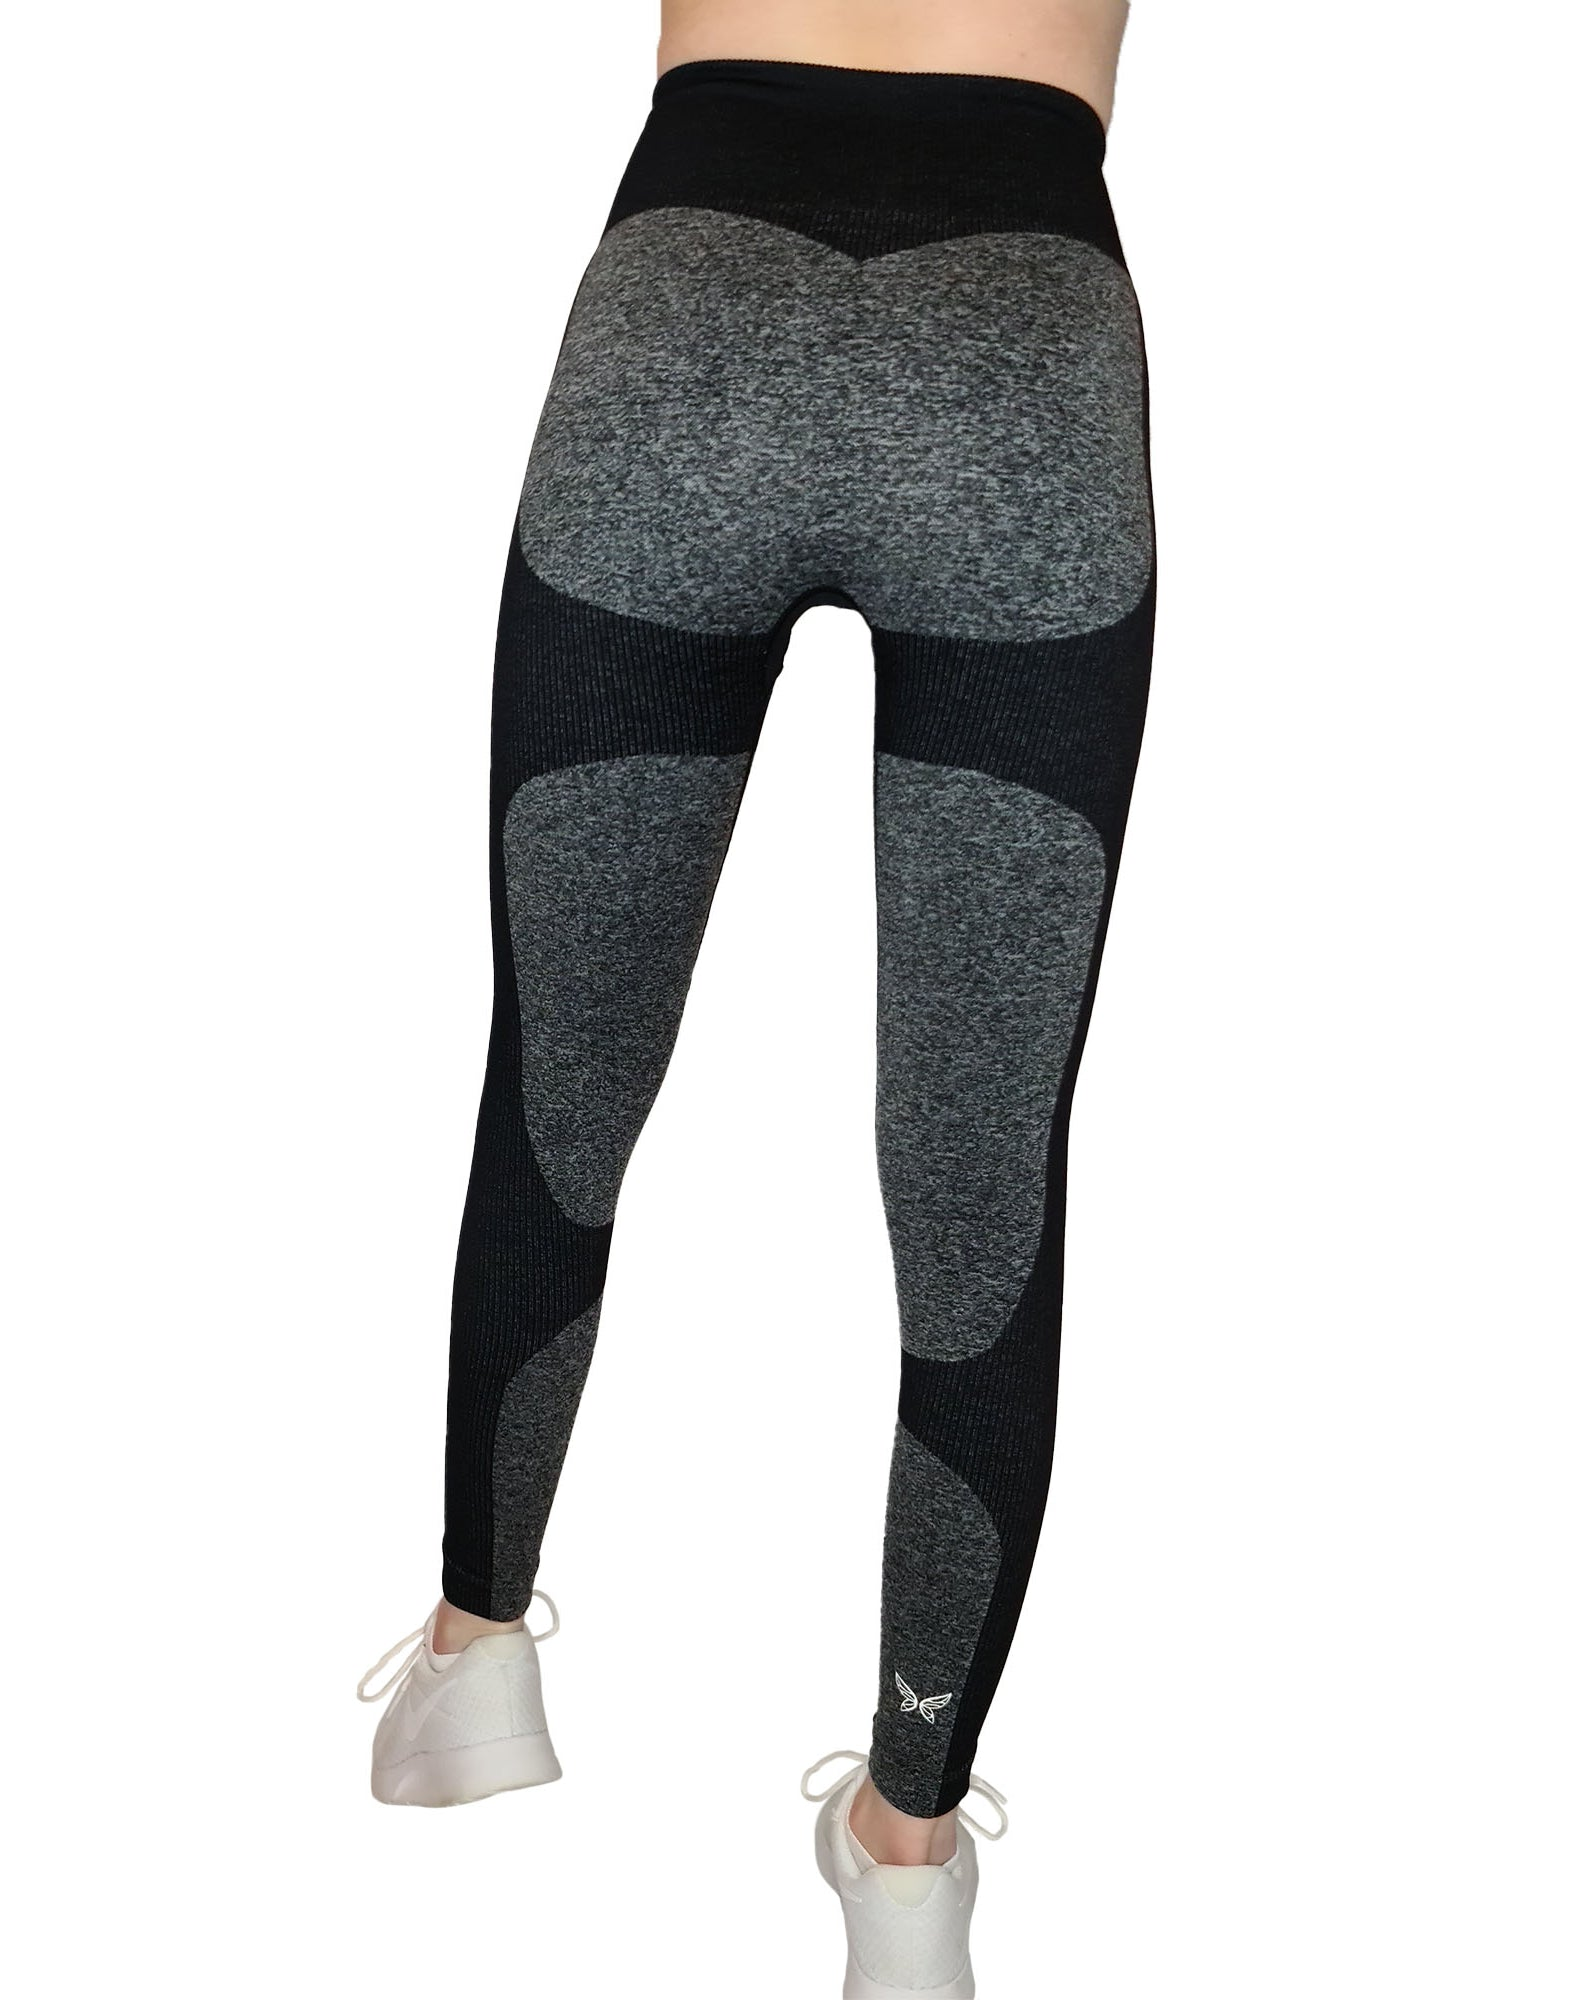 EVIE BLACK SEAMLESS GYM LEGGINGS-ARTEMIS CLASSIC COLLECTION